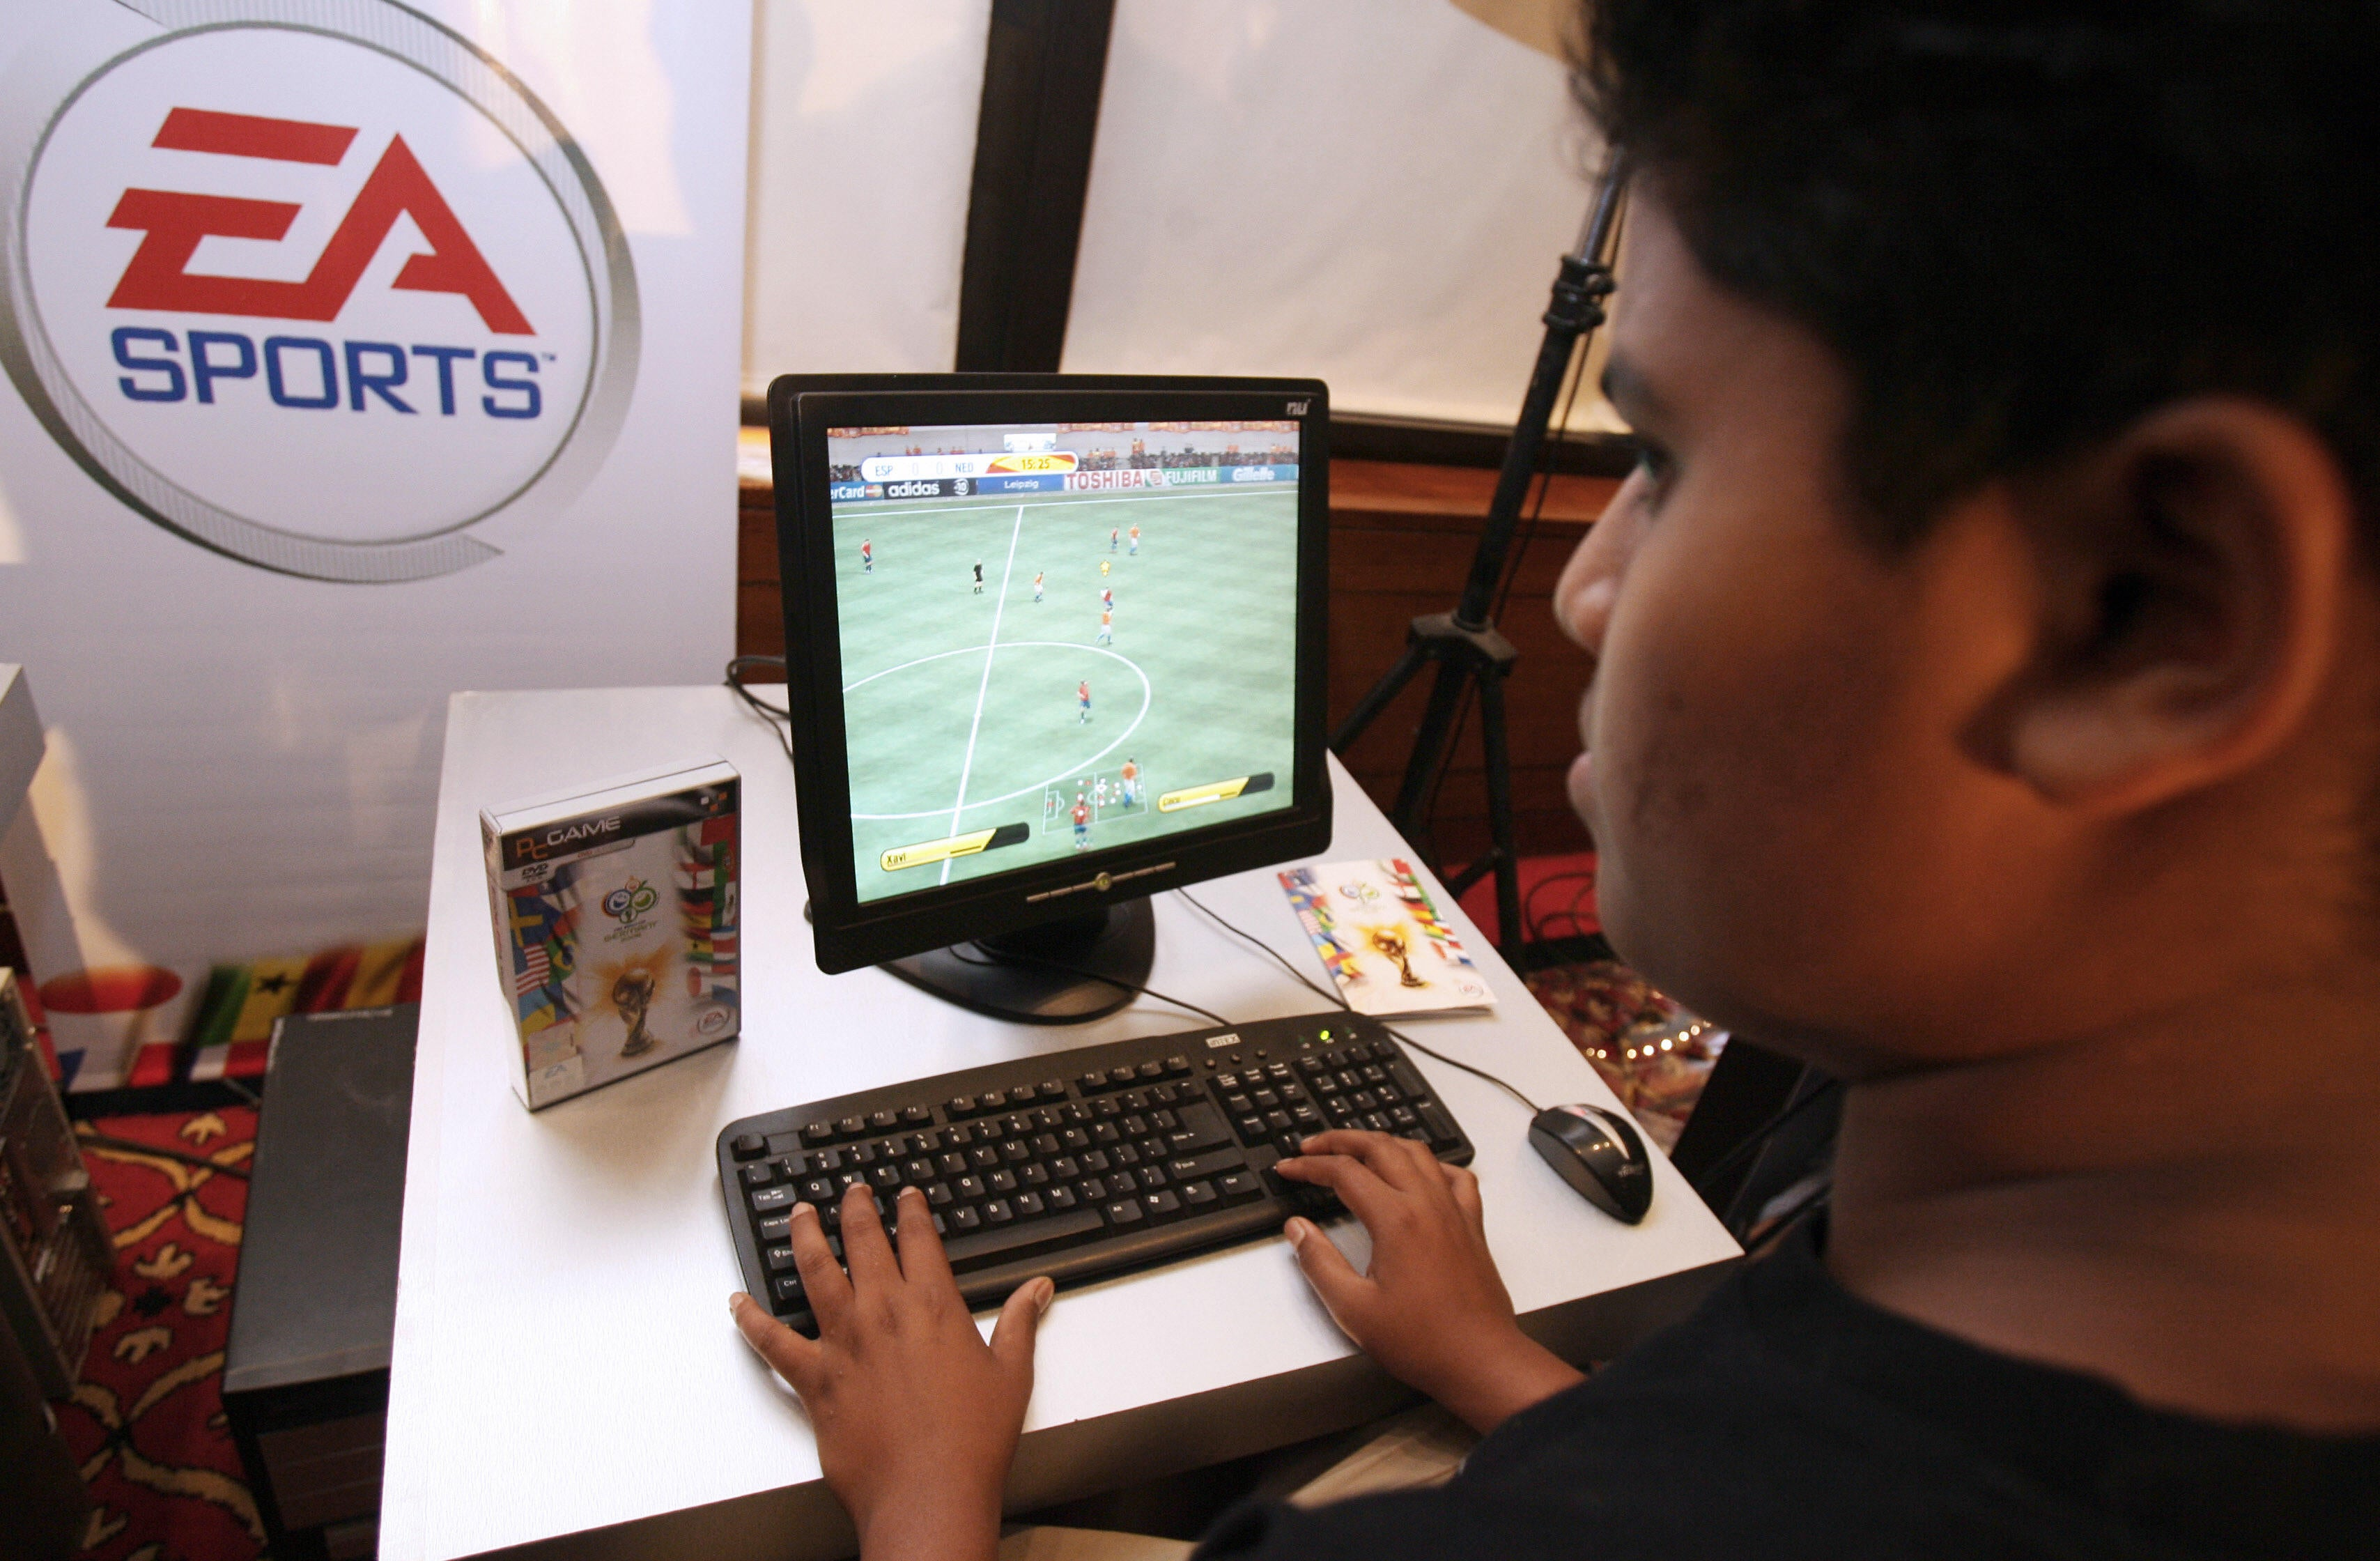 Indian state bans online gaming over 'suicides and gambling debts' - independent